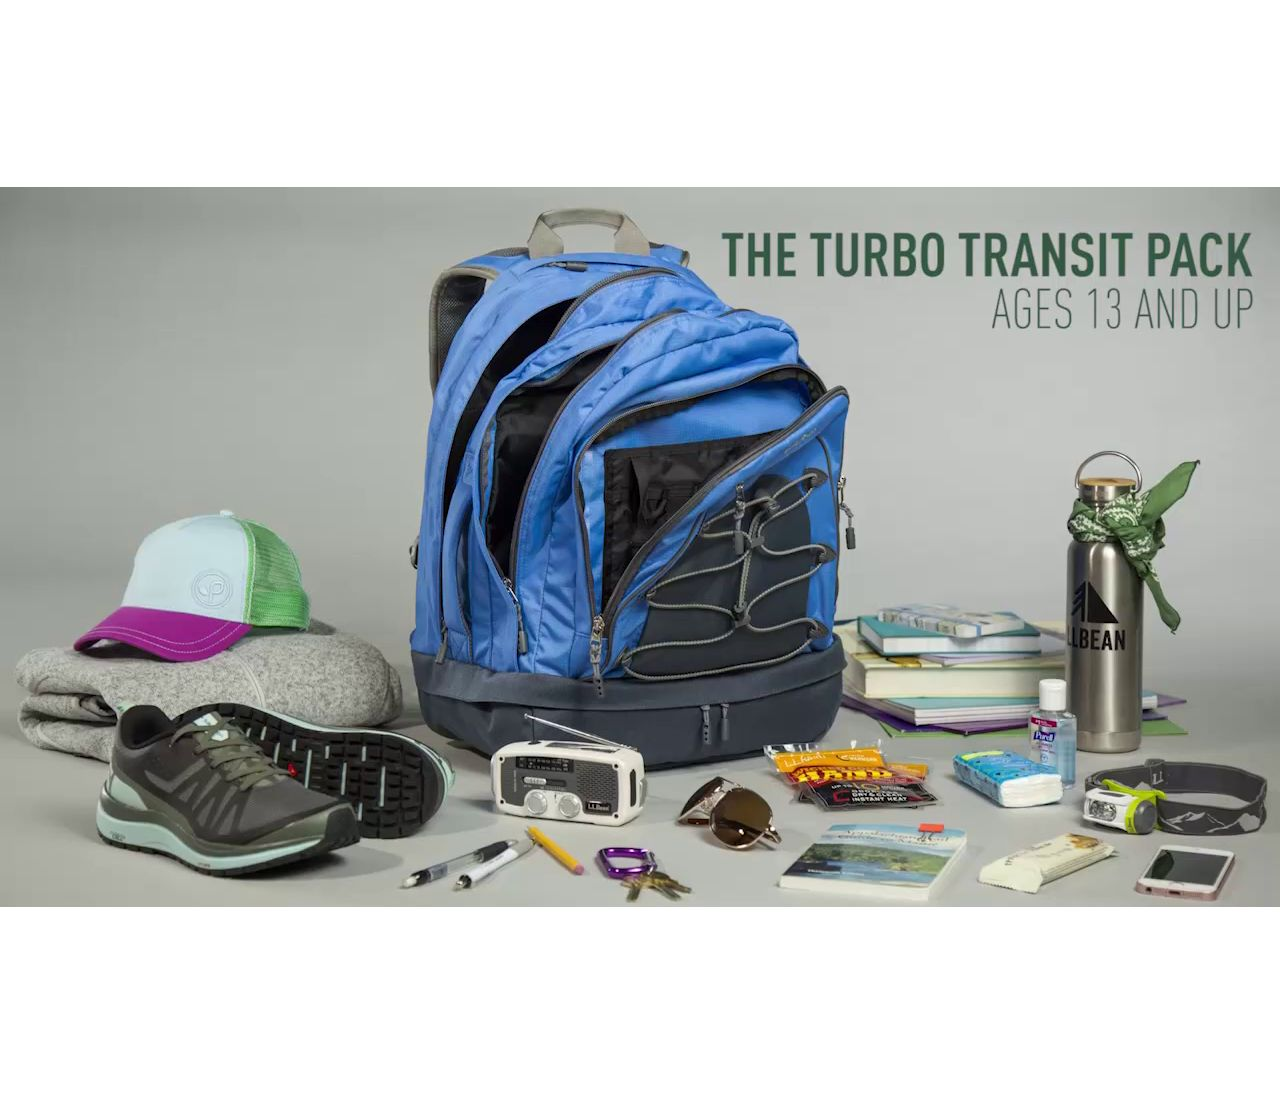 Video: Turbo Transit Backpack